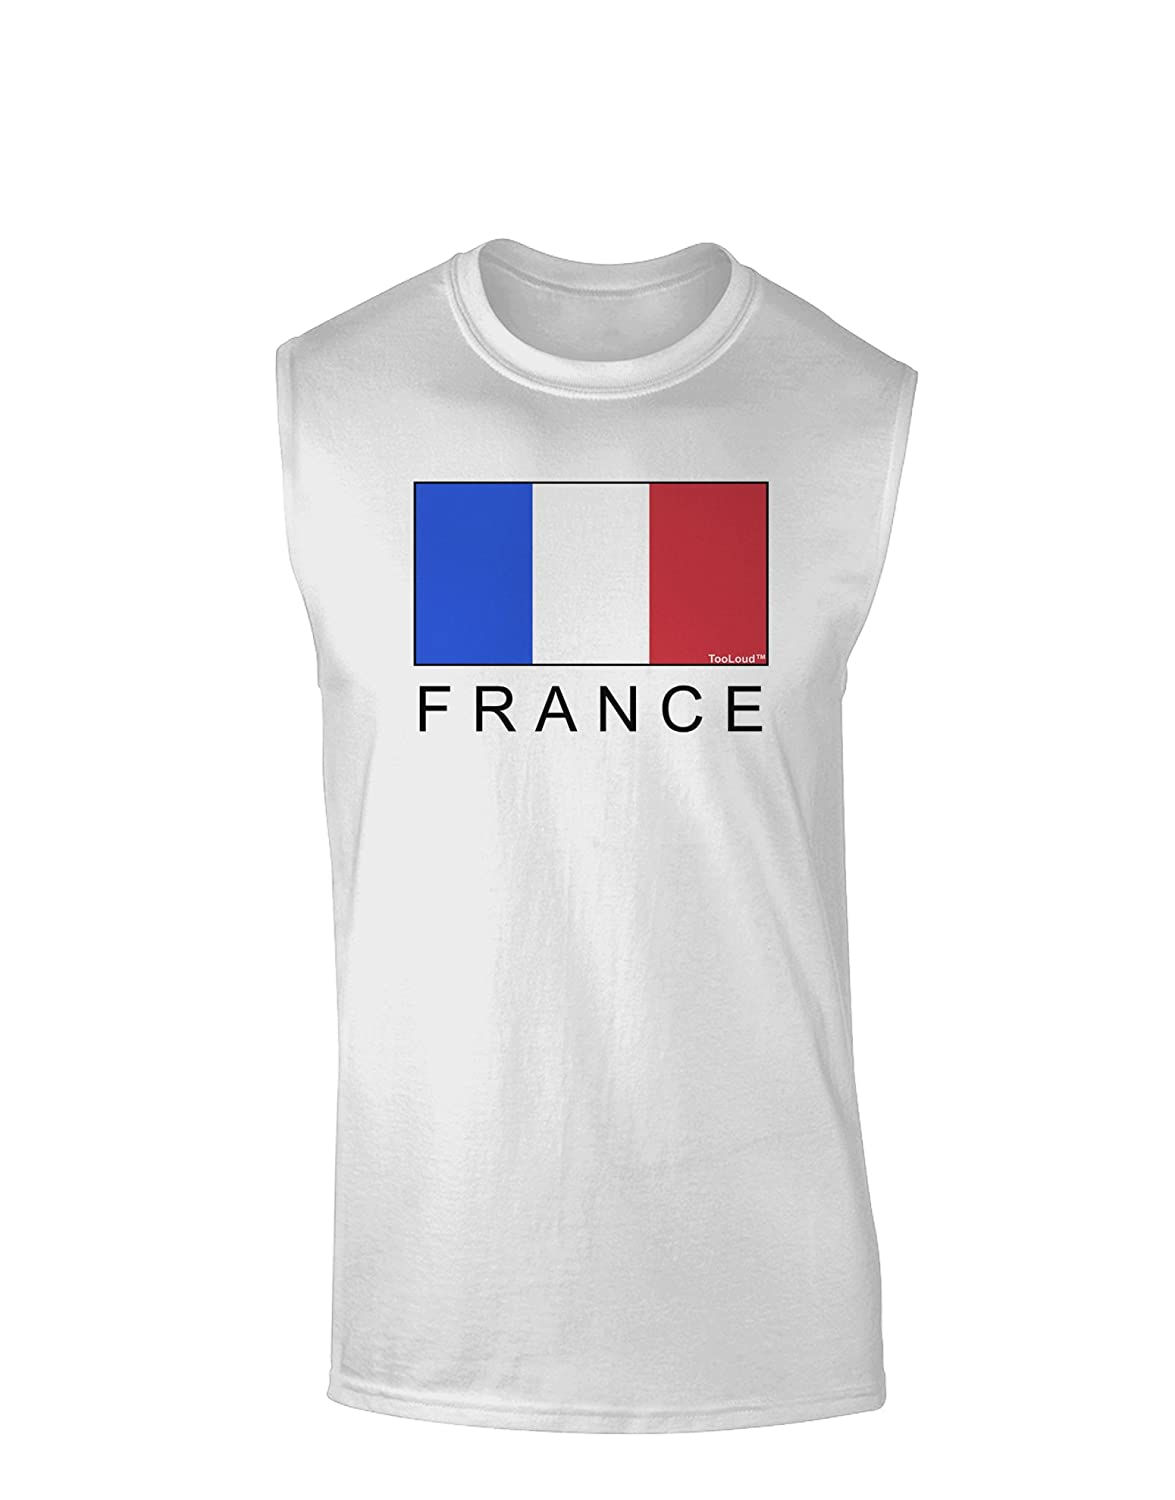 France Text Muscle Shirt TooLoud French Flag